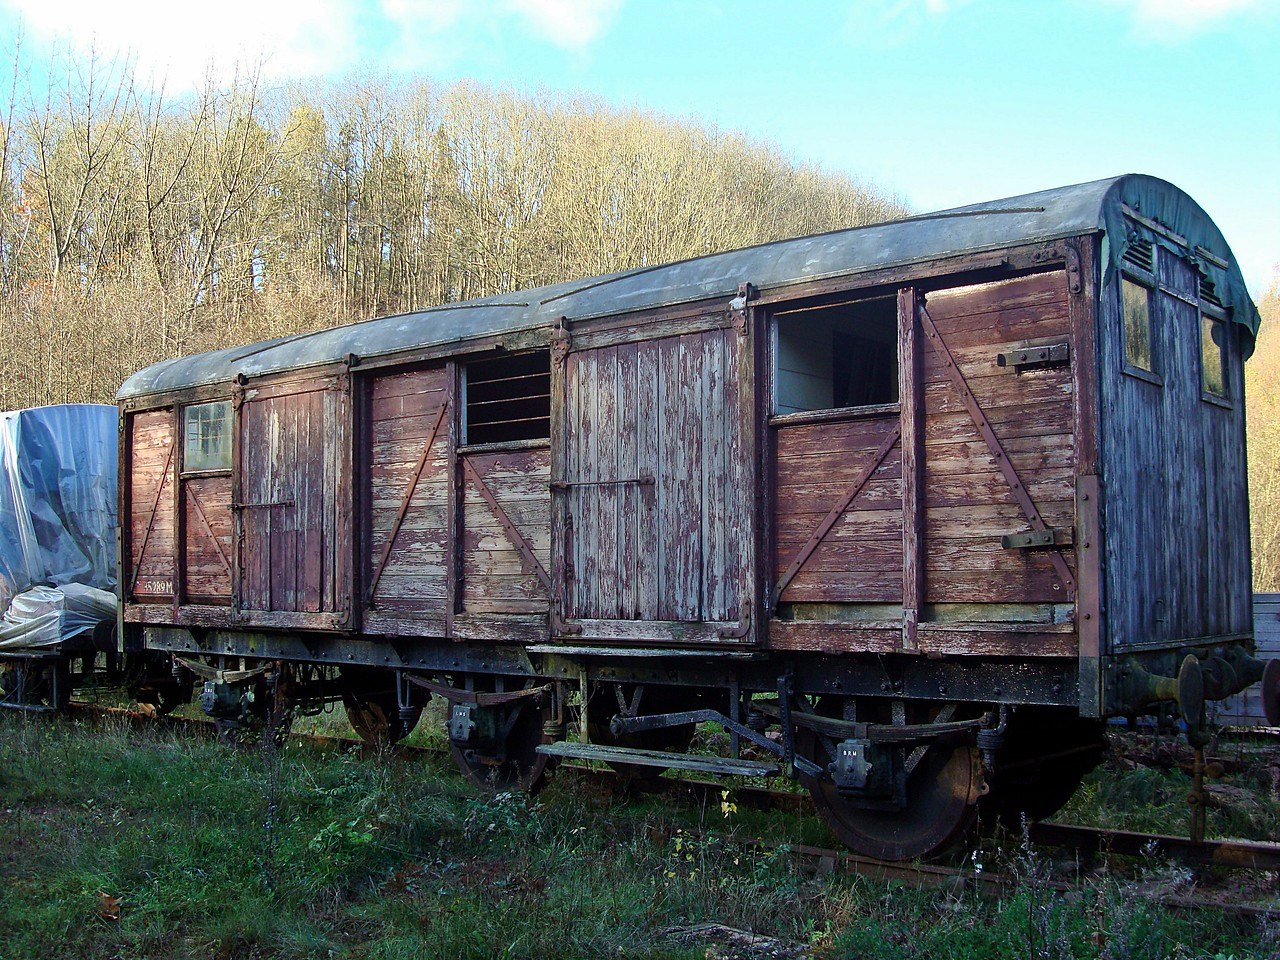 LMS 4384 (35289) Covered Carriage Truck 13,11,2010. (Now At Foxfield Railway)